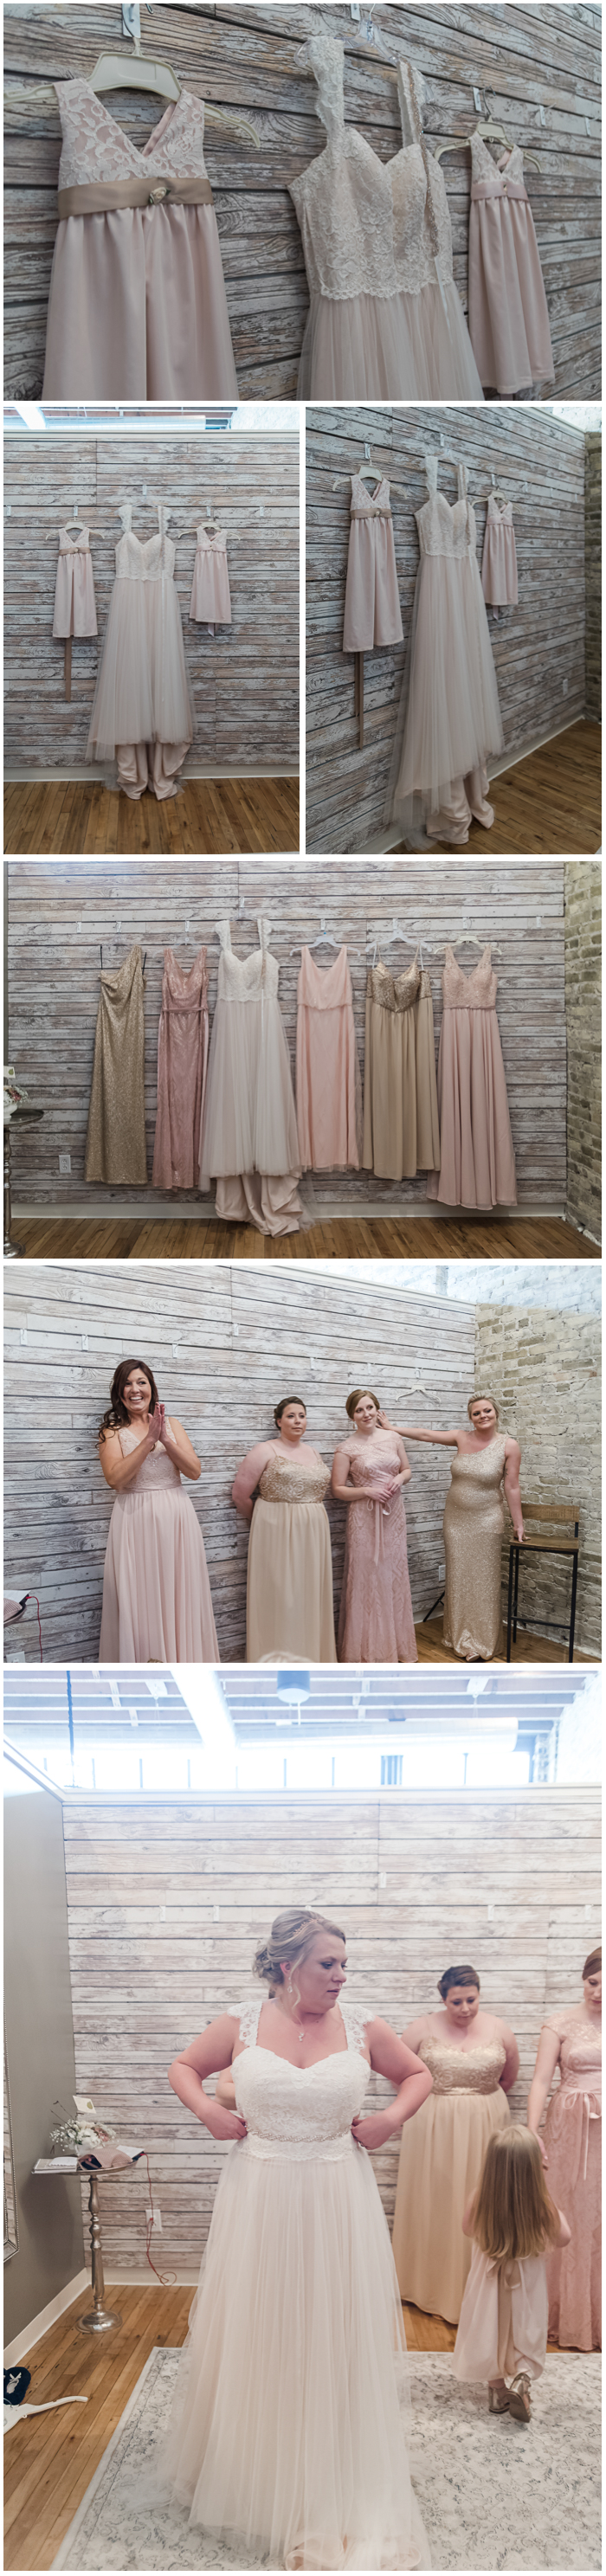 Lindsay's stunning gown was a Stella York she purchased at Bon Bon Belle located just above Mercantile! (Where Lindsay works too!). Her girls' flower girl dresses were hadmade! The mix of golds, pinks and textures were a photographer's dream!